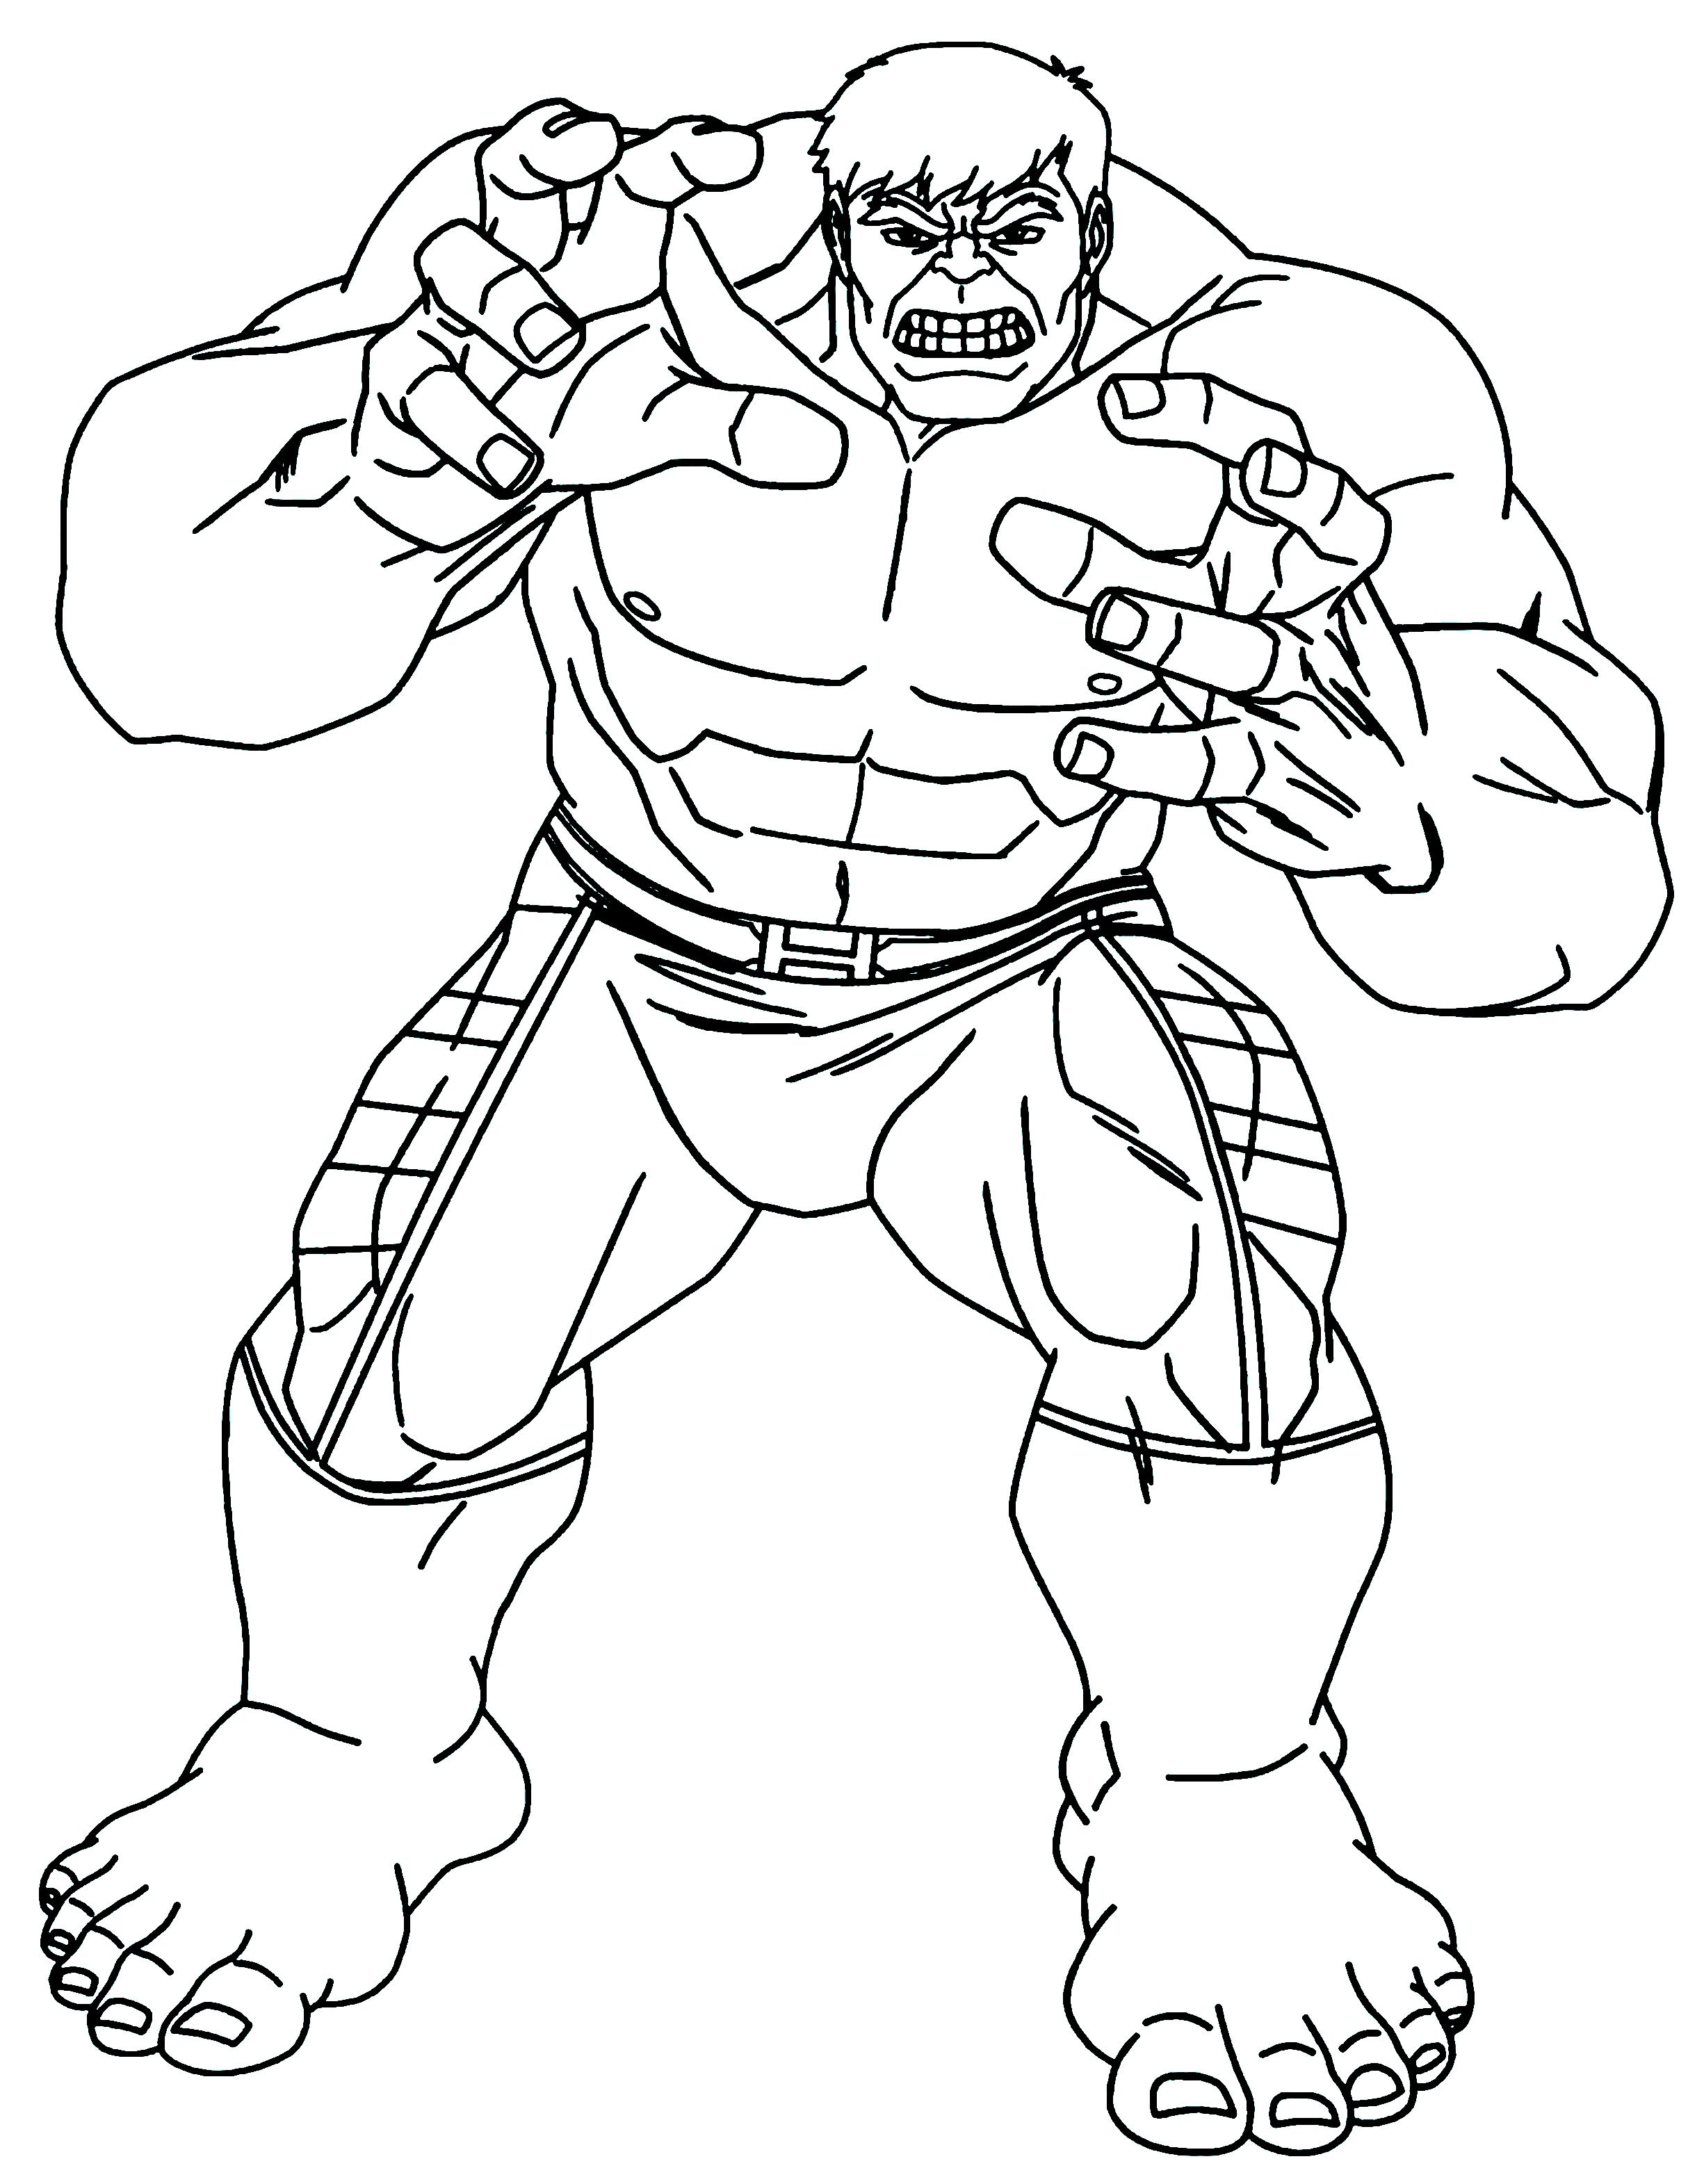 30 Hulk Coloring Pages For Kids Avengers Coloring Pages Avengers Coloring Superhero Coloring Pages